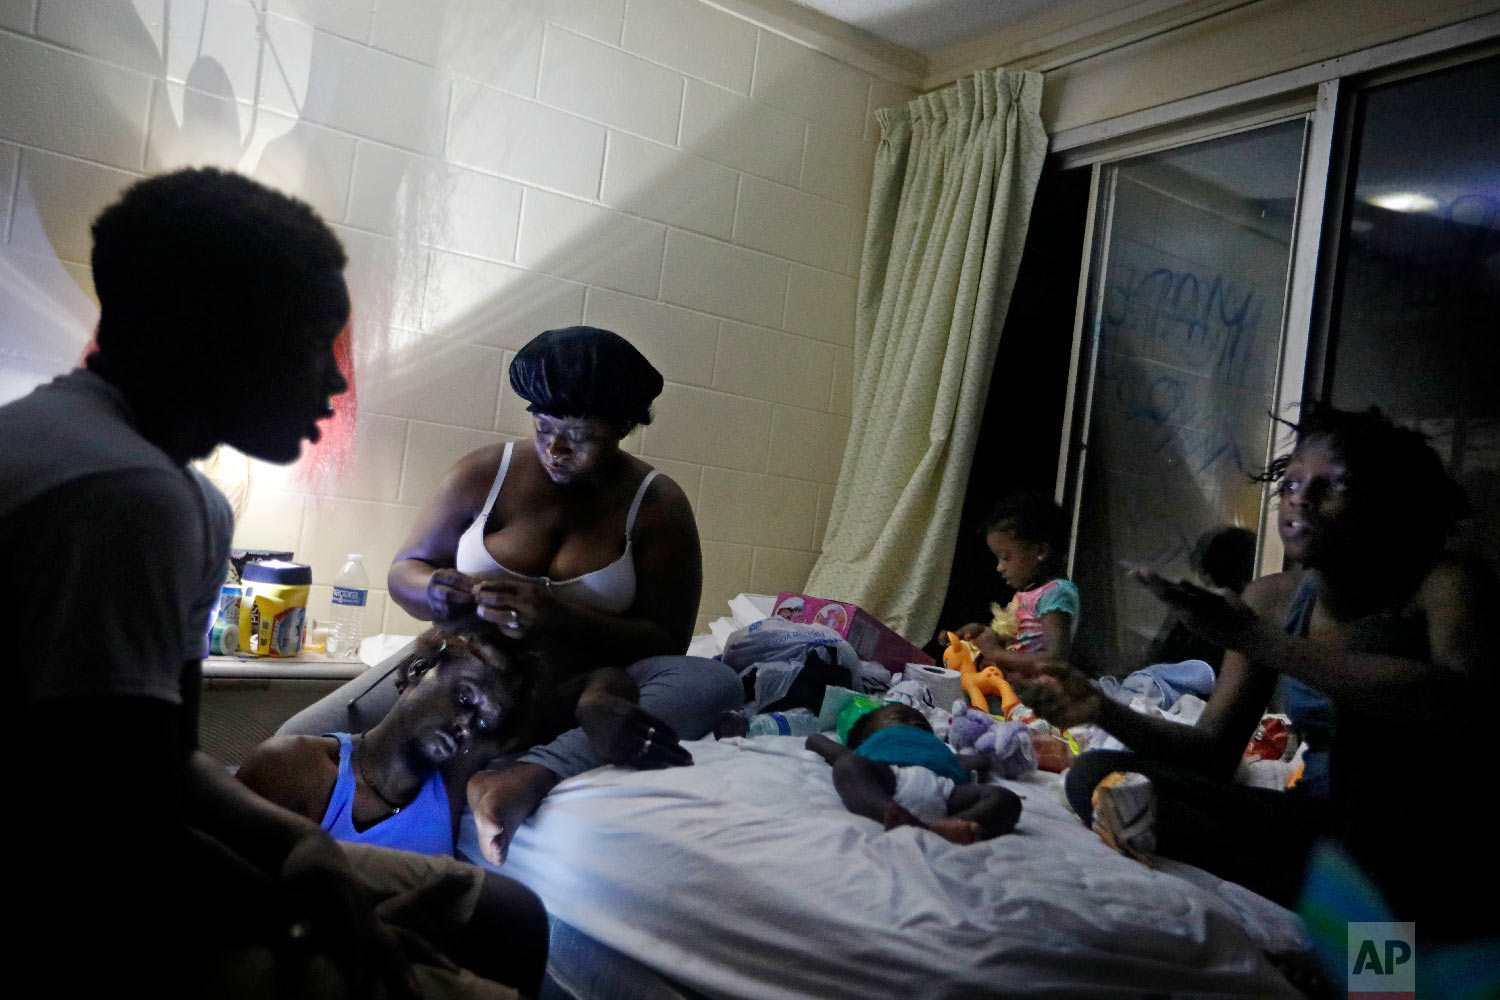 Gabrielle Morgan, center rear, braids the hair of her husband Santional as they sit by a lantern with their children from left, Decoya, 13, Isabella, 3 mos., Gabriella, 3, and Lakevia, 15, in their room at the damaged American Quality Lodge where they continue to live without power in the aftermath of Hurricane Michael in Panama City, Fla., Oct. 16, 2018. (AP Photo/David Goldman)